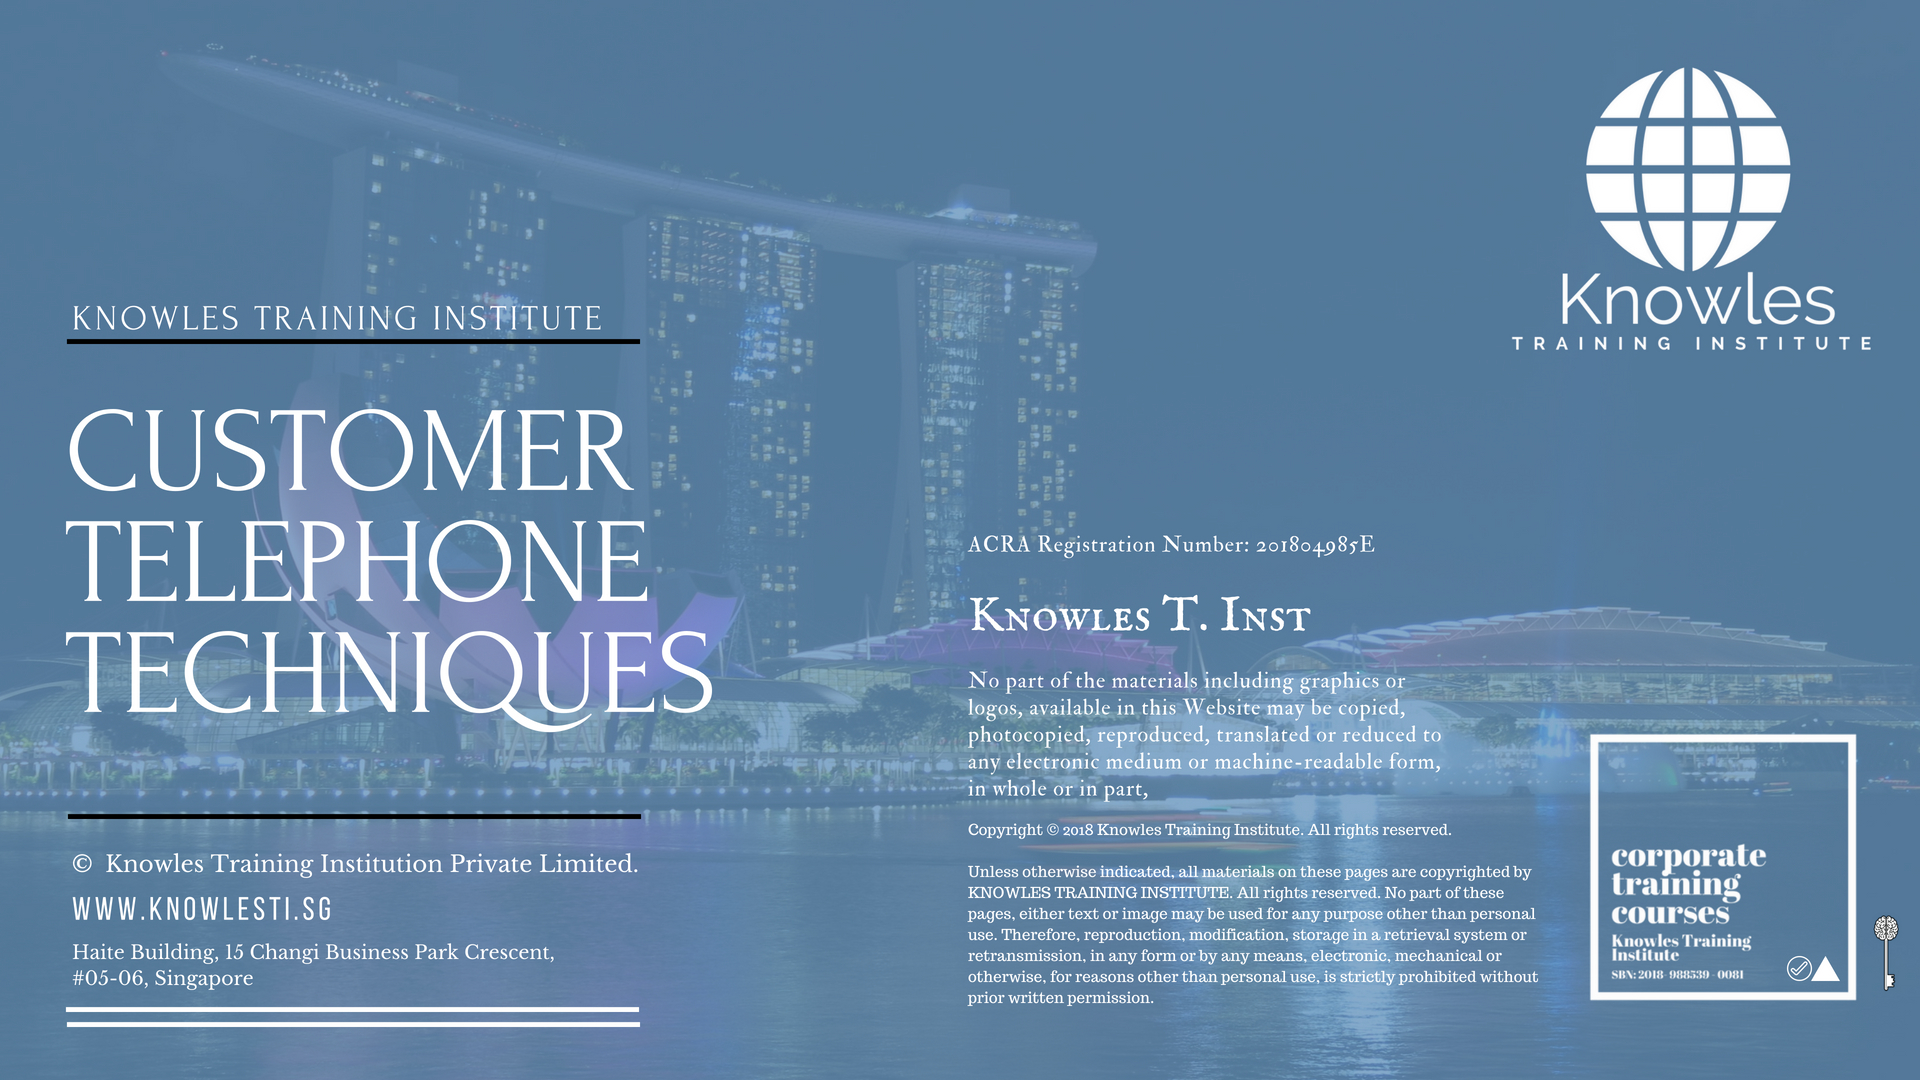 Customer Telephone Techniques Training Course In Singapore – Knowles